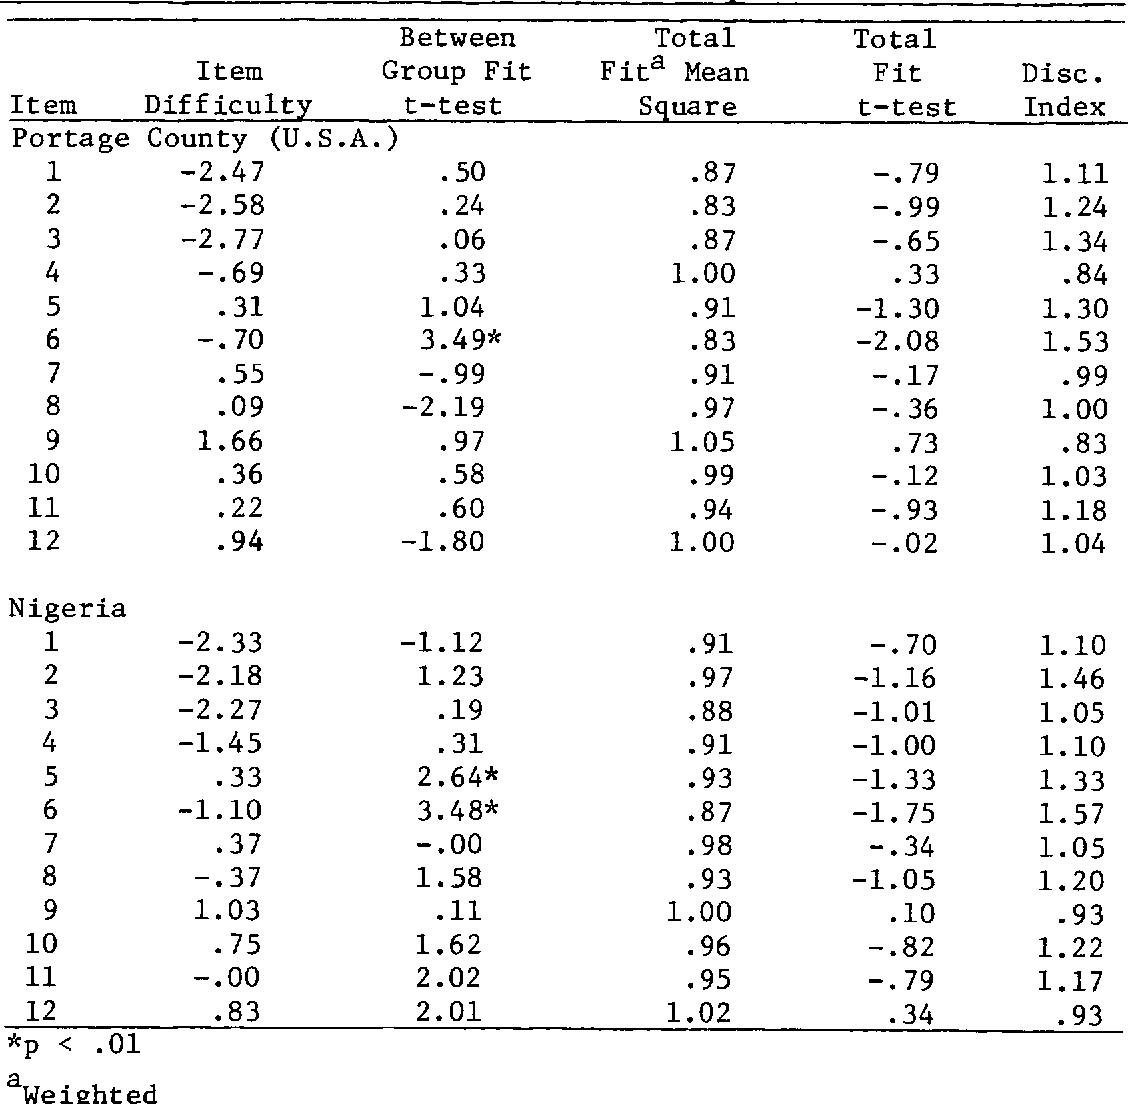 Table 4 from A Cross-Cultural Analysis of the Fairness of the